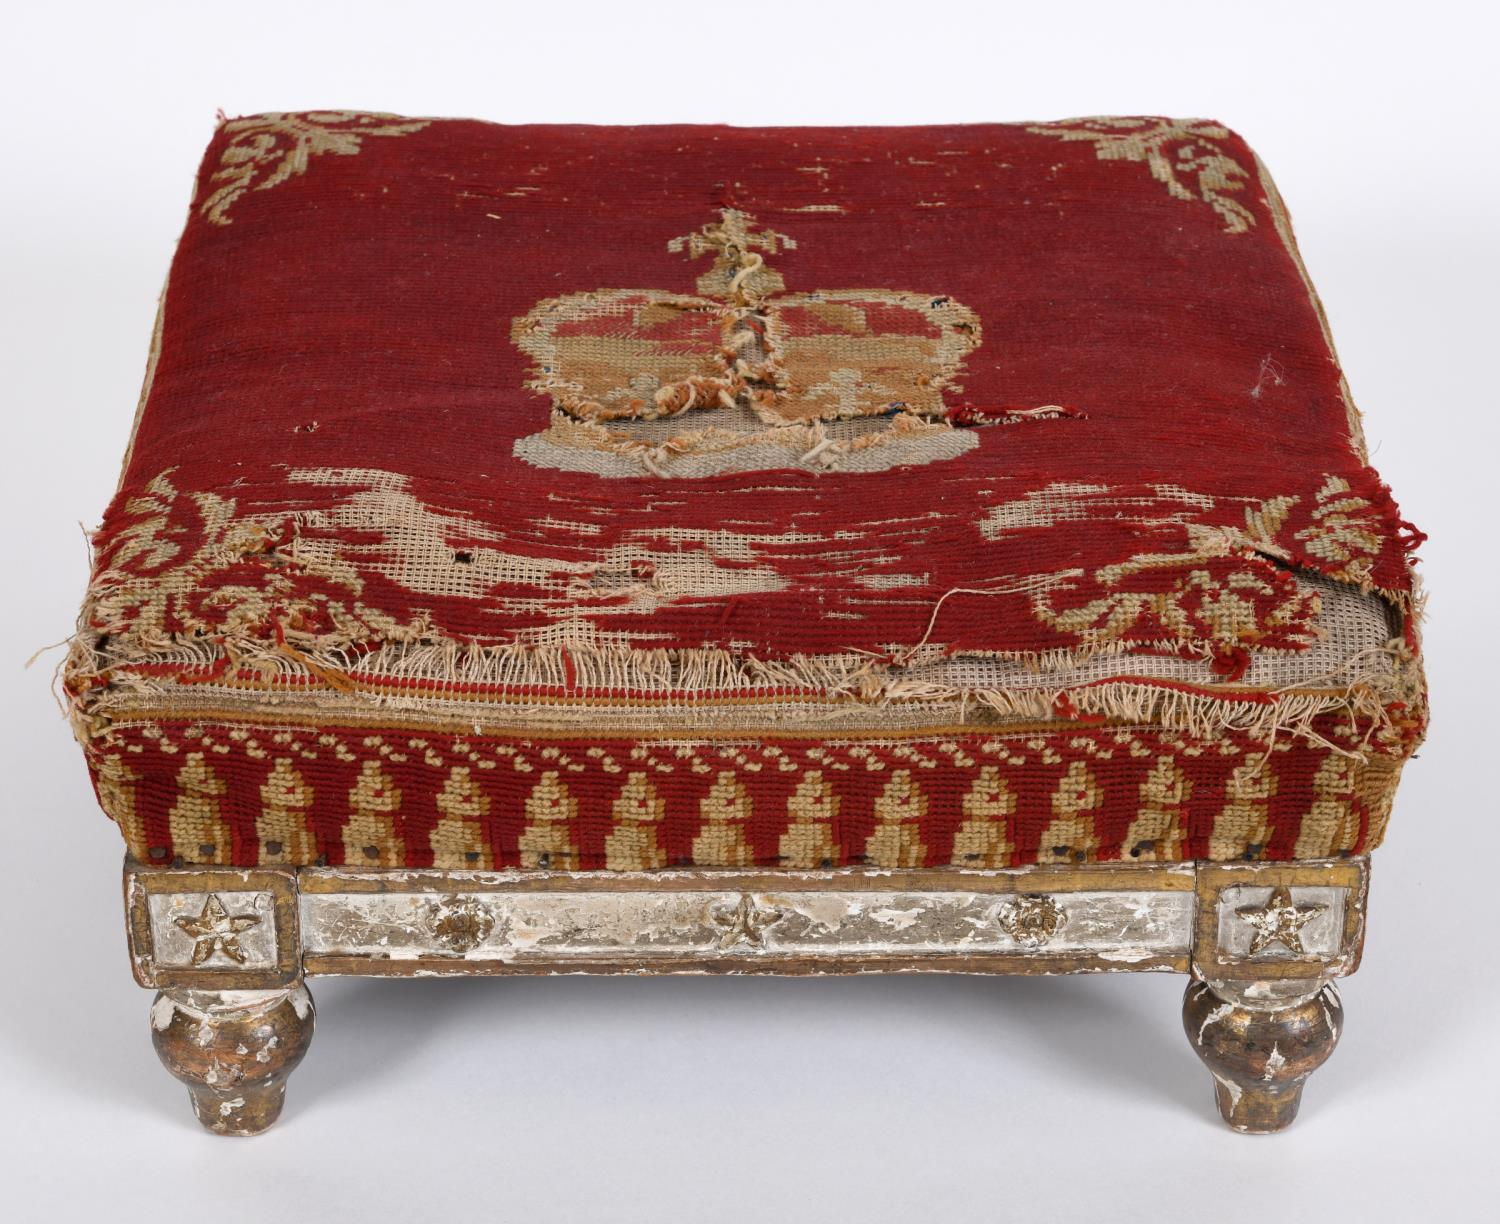 A WILLIAM IV STOOL, POSSIBLY A CORONATION STOOL. A fine needlework and gilt gesso stool, the - Image 2 of 3